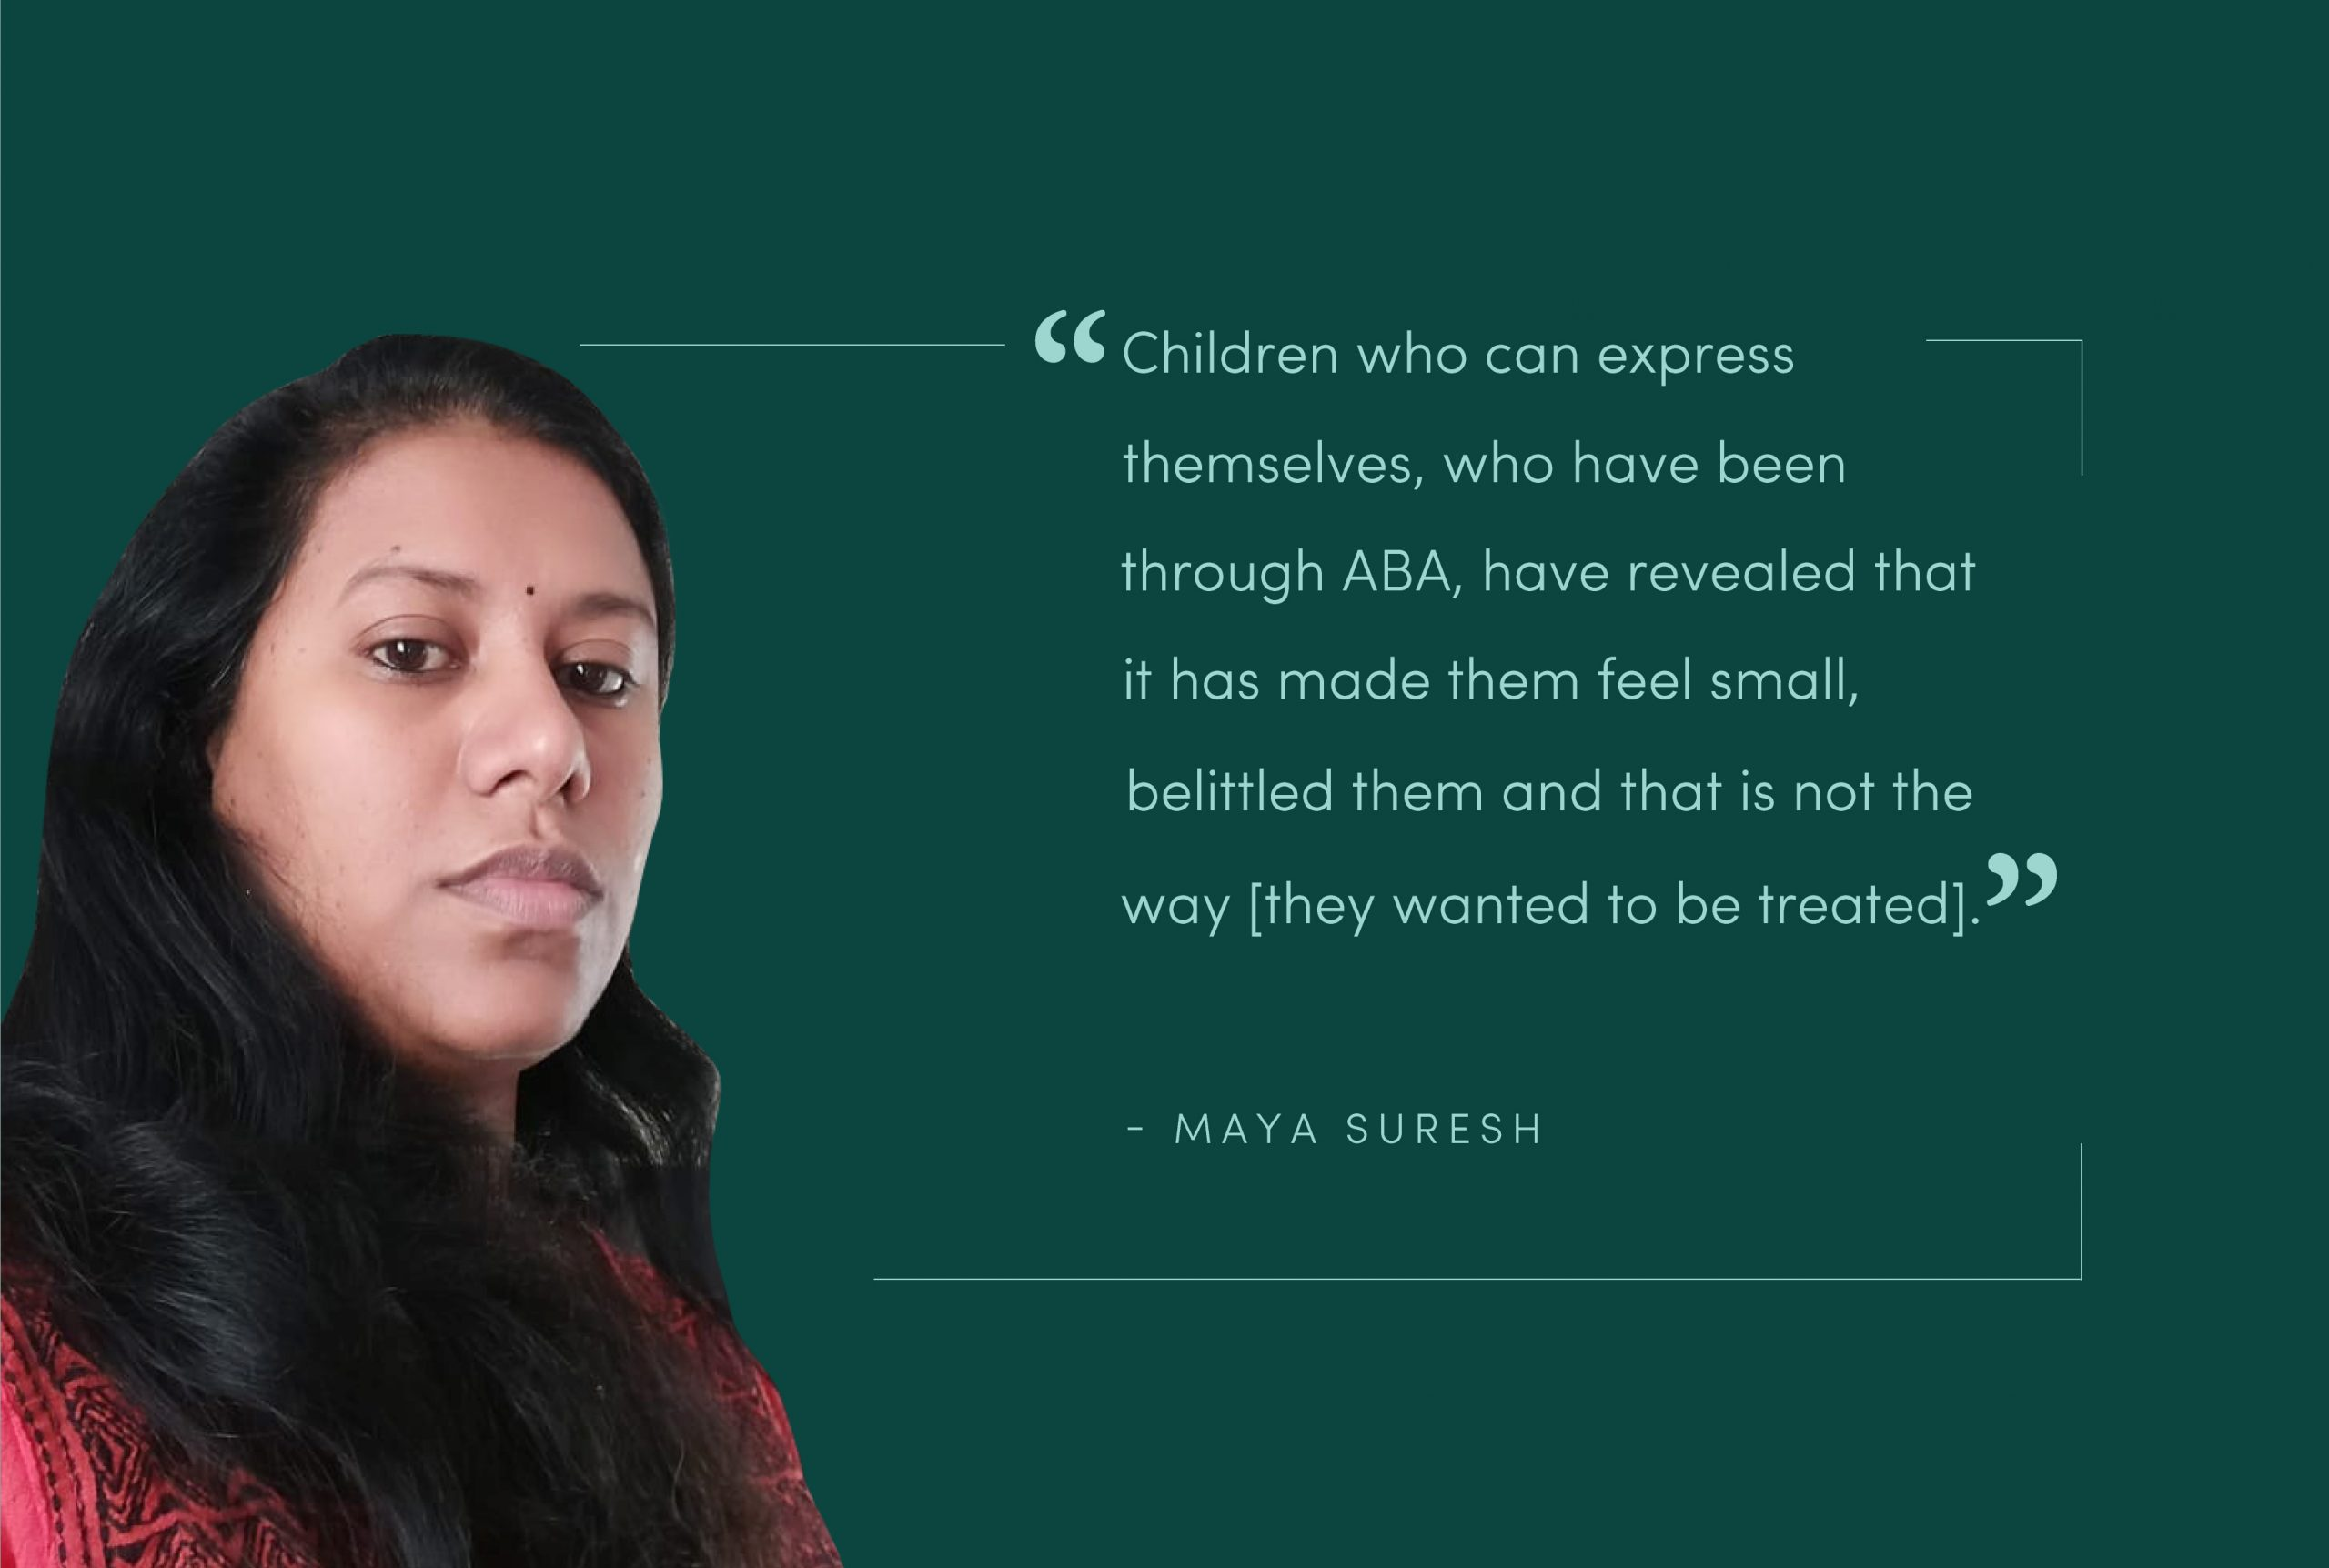 """An image of Maya Suresh with the words: """"Children who can express themselves who have been through ABA have revealed that it has made them feel small, belittled them and that is not the way [they wanted to be treated.]"""""""